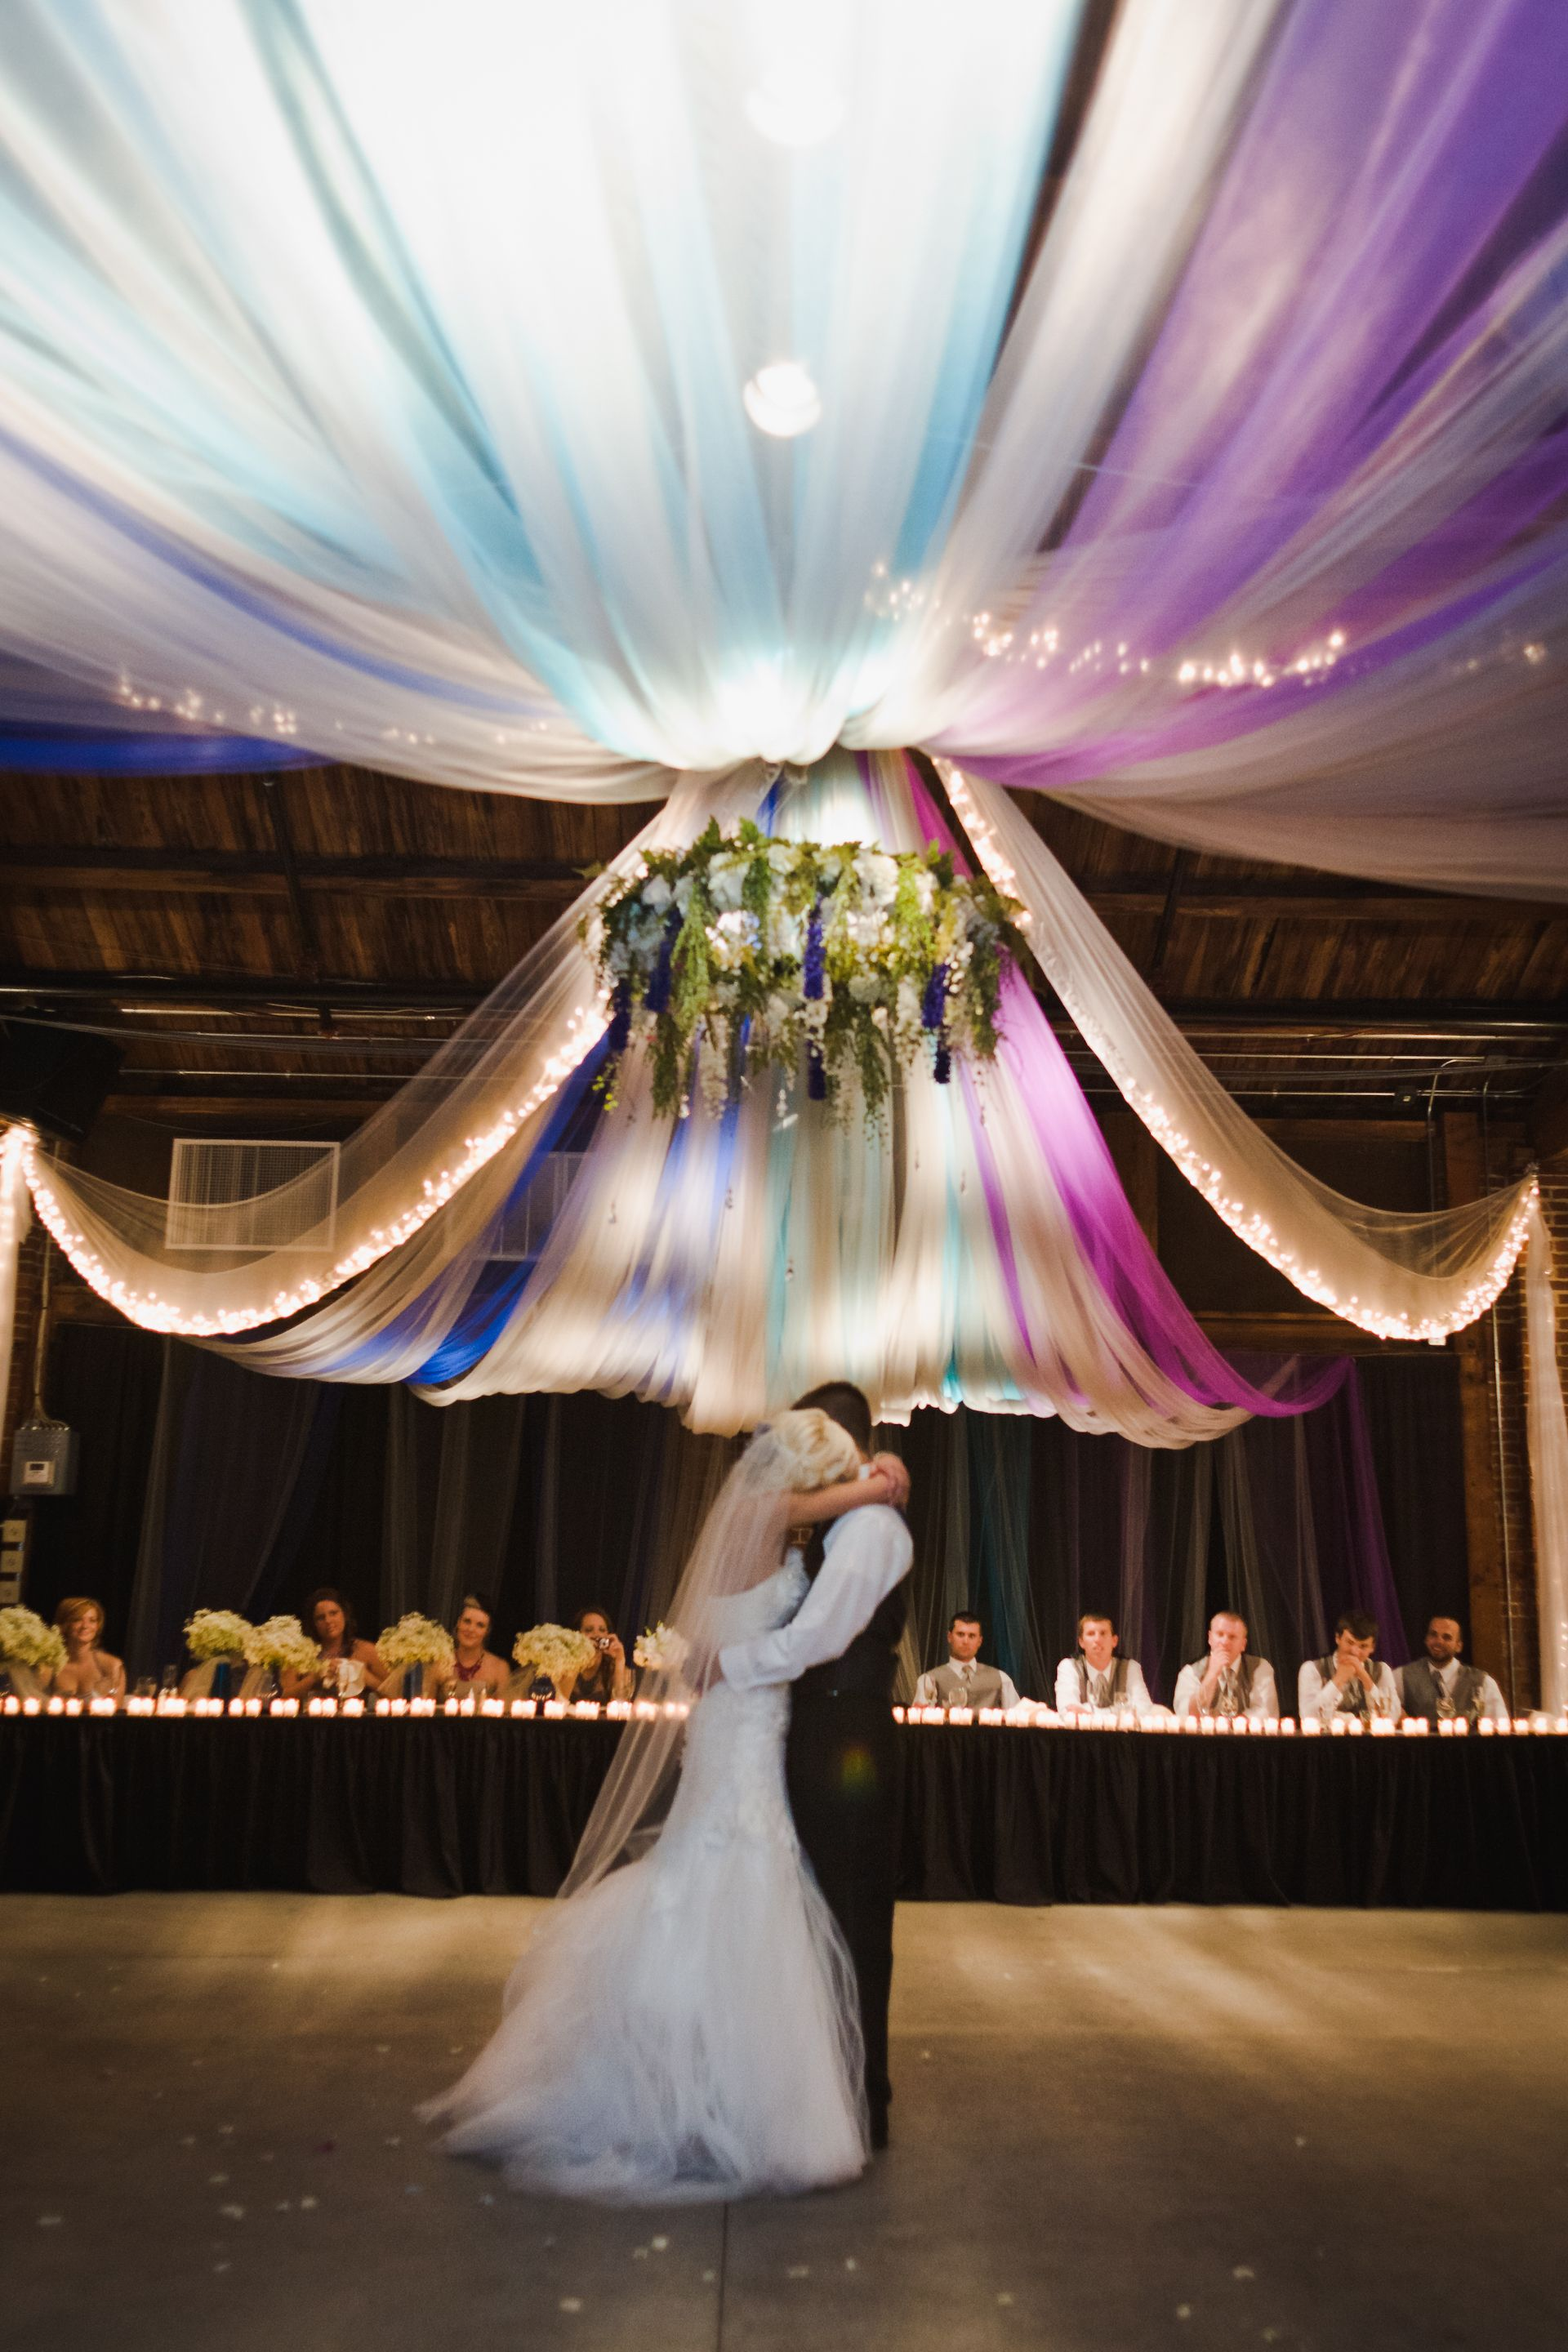 Tulle Canopy Diy Details About 54x120 Ft 40 Yards Tulle Bolt Wedding Decoration